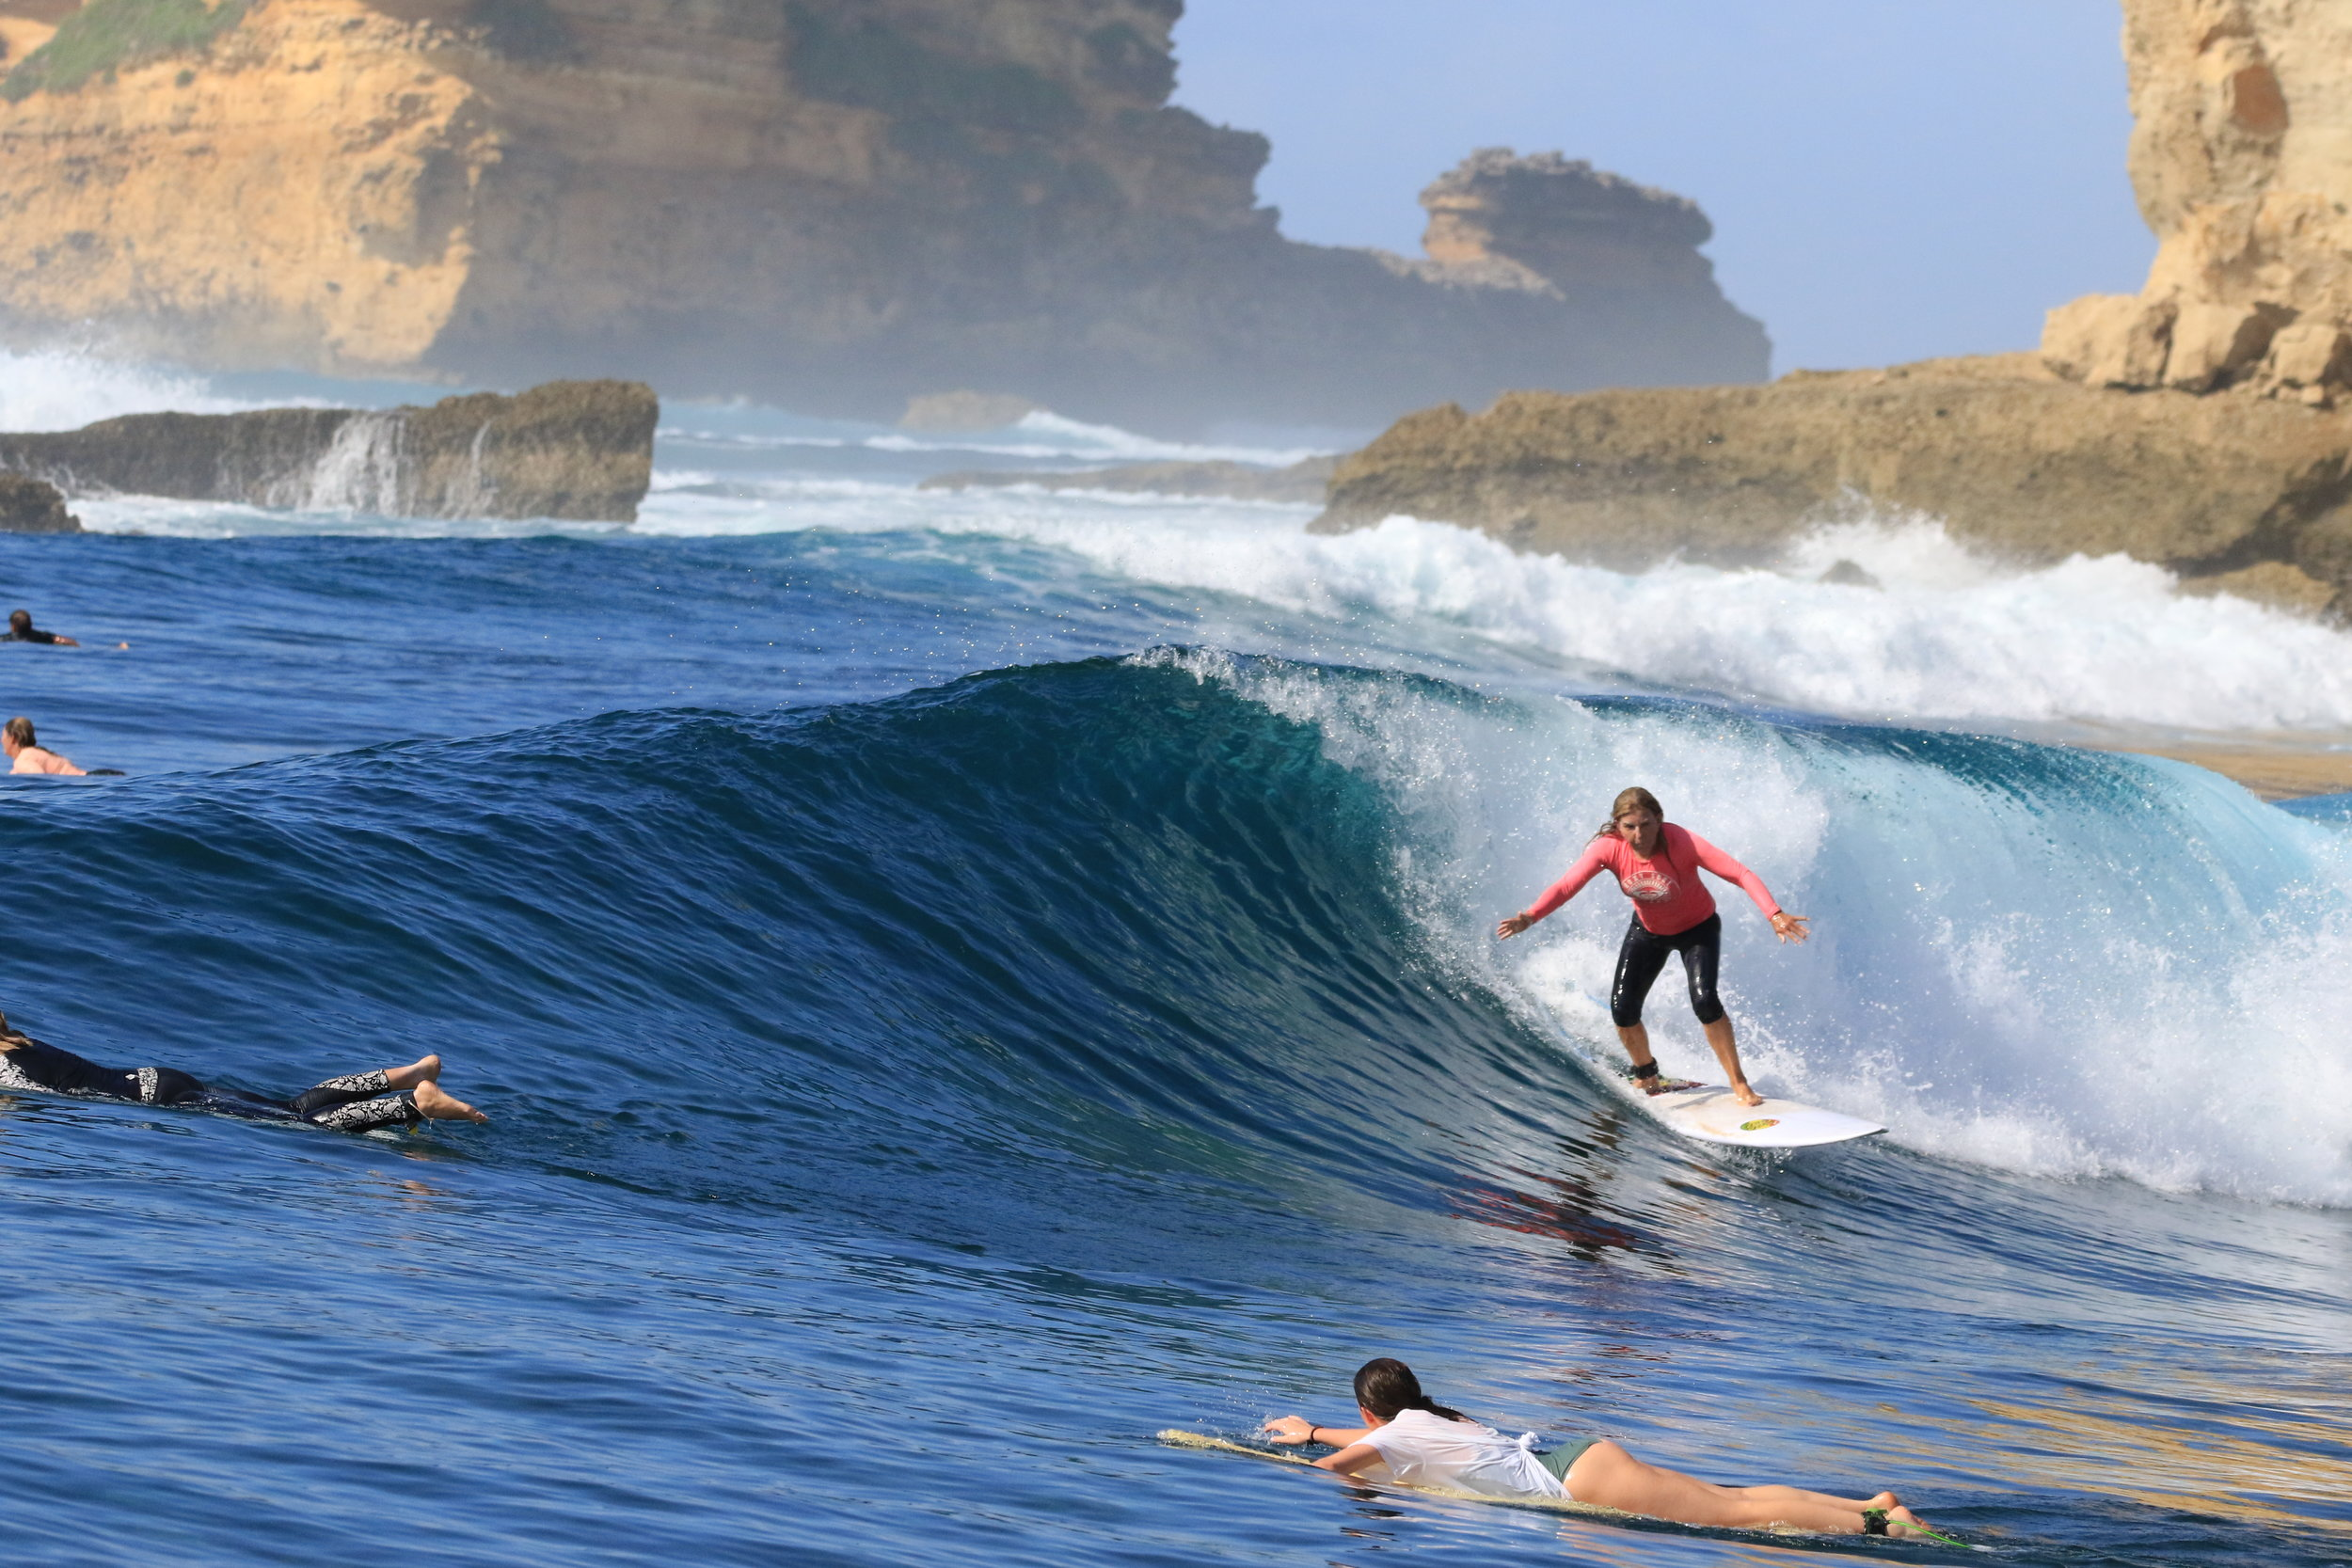 Nice wave but, can you spot this surfer's error? Hint: look at her foot positioning